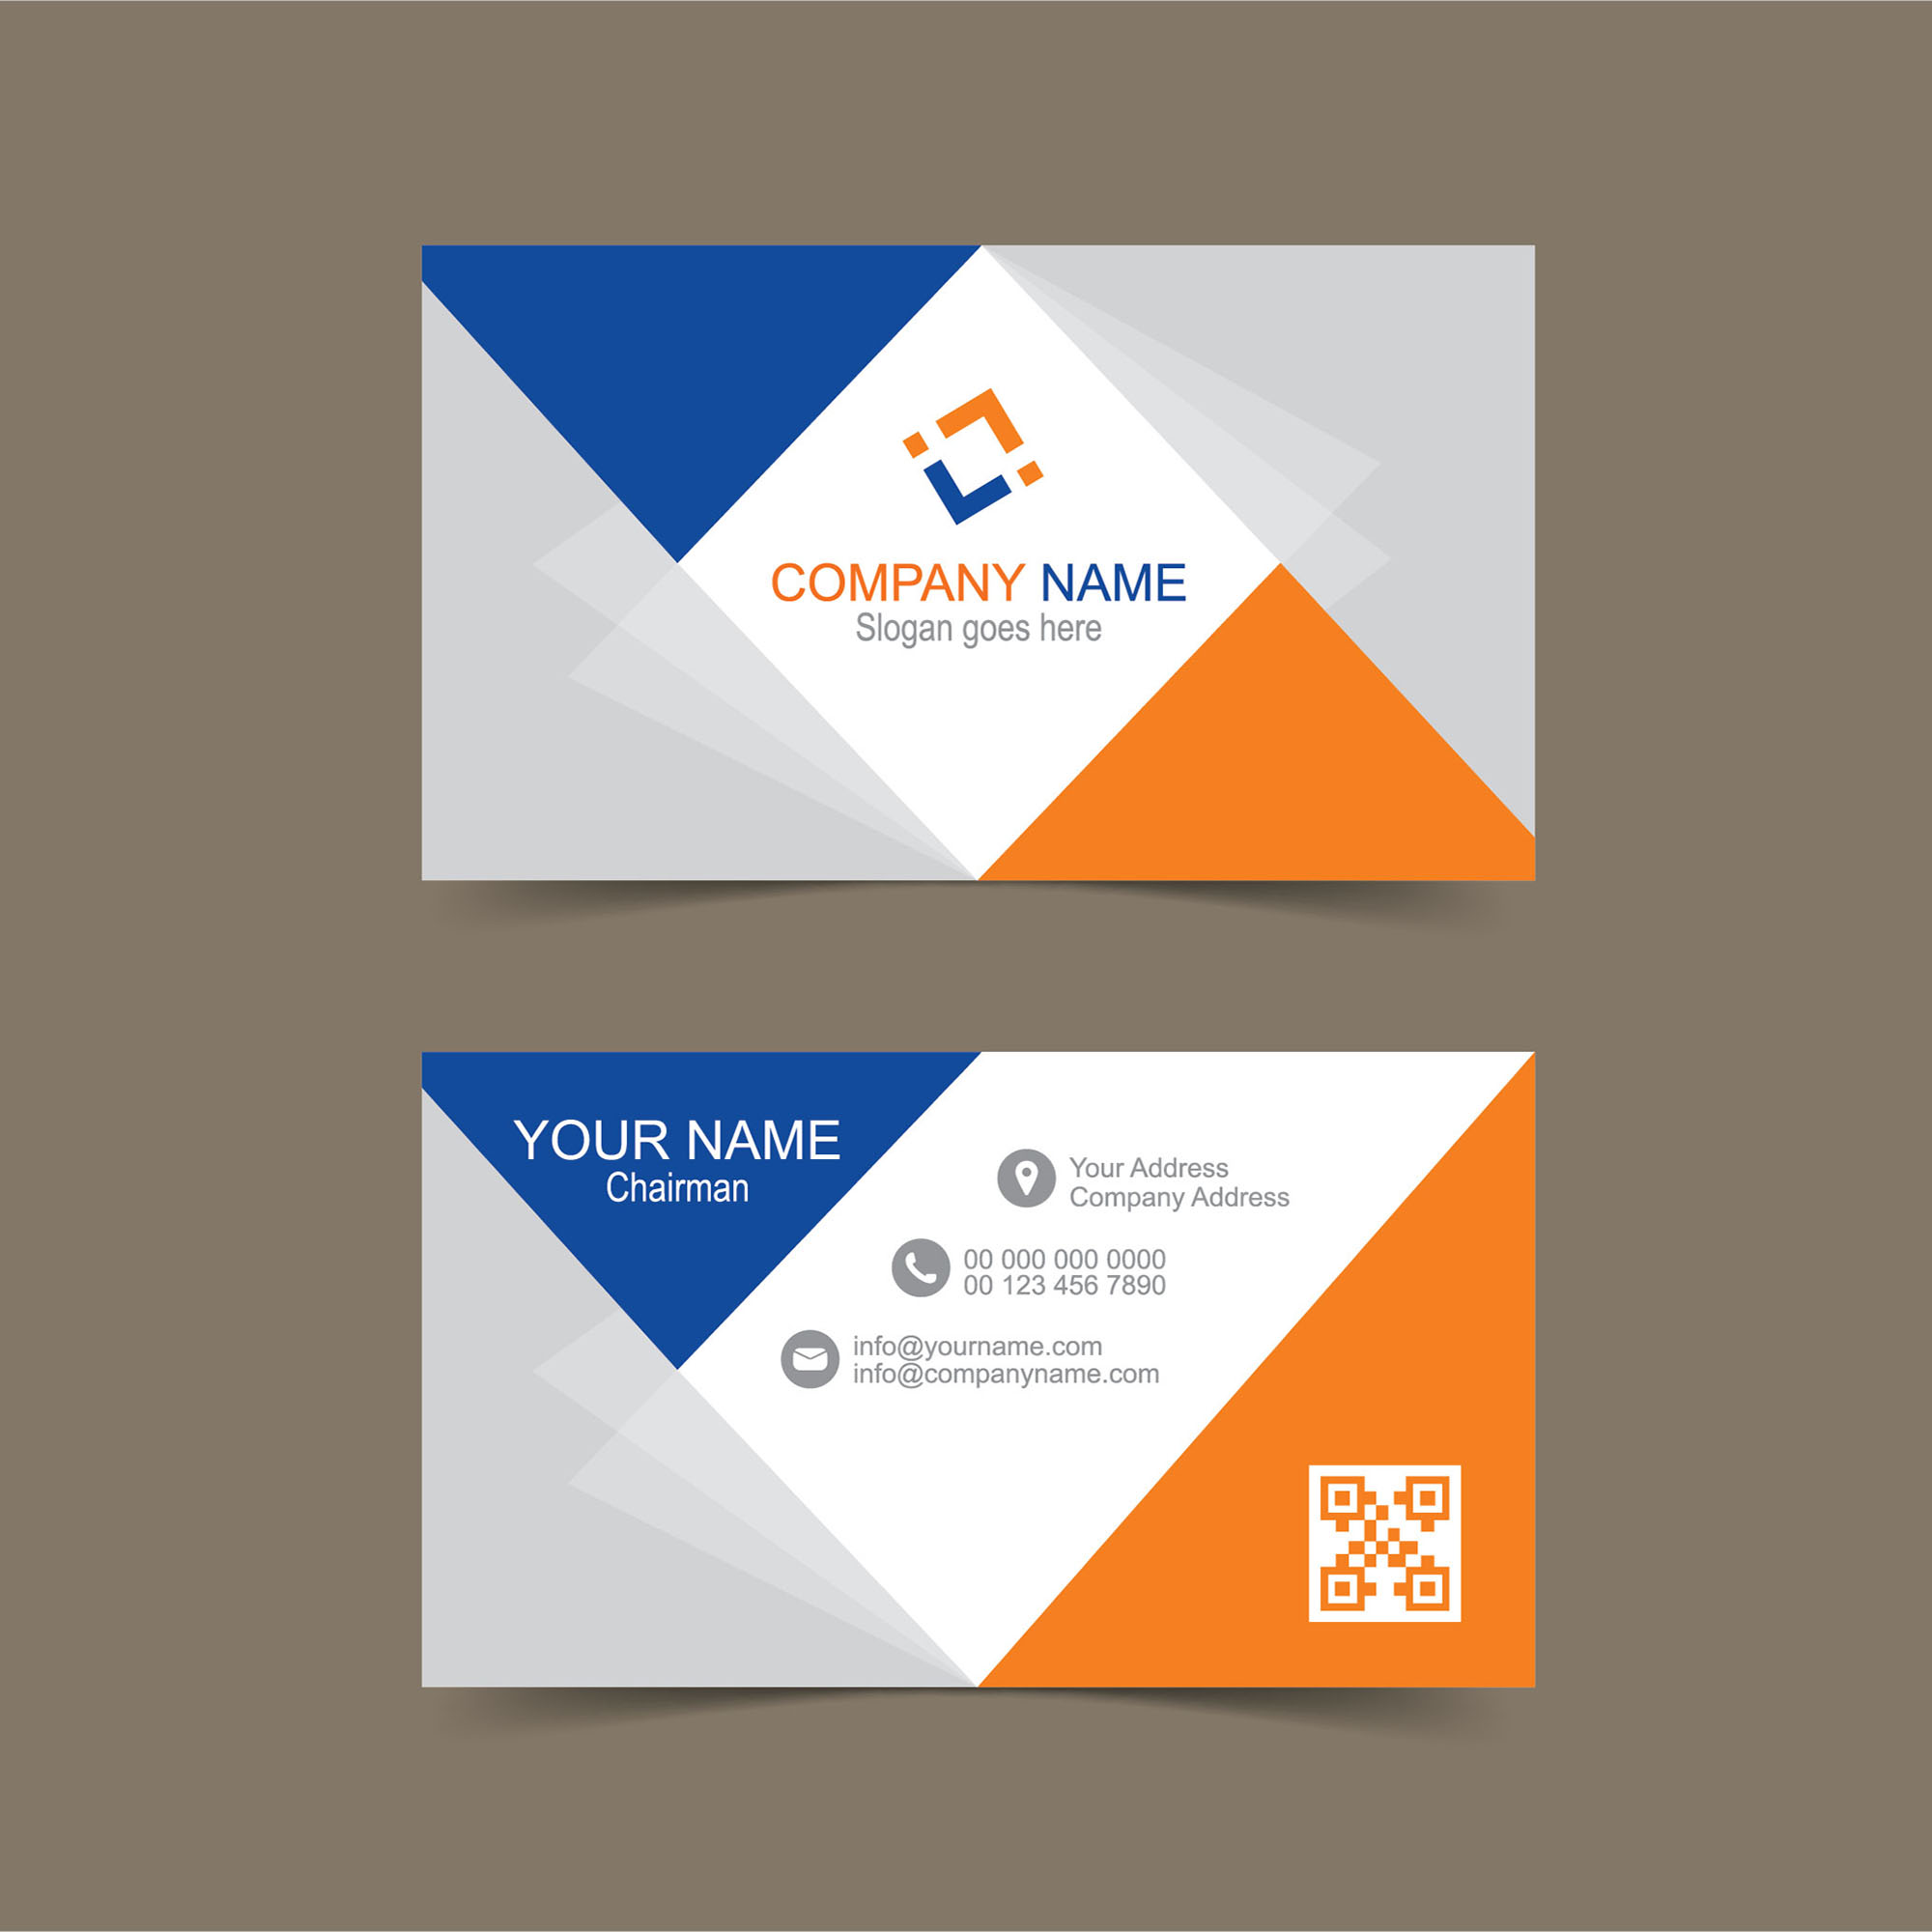 Free business card template for illustrator wisxi business card business cards business card design business card template design templates reheart Image collections